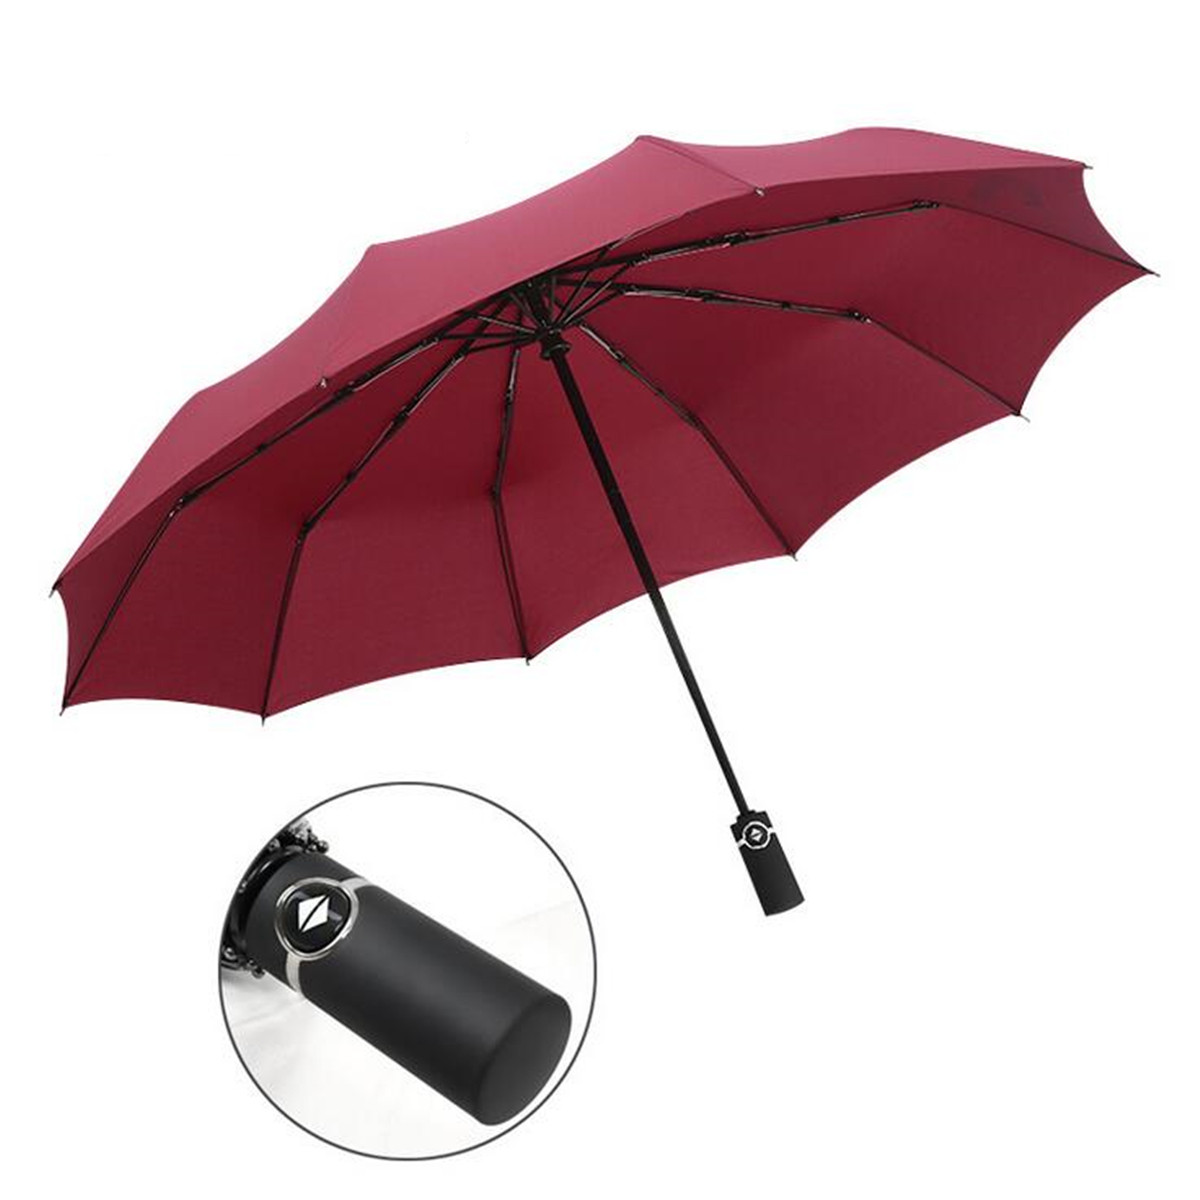 Outdoor 10 Ribs Fully Automatic Folding Umbrella Auto Open Close Waterproof UV Rain Sunshade